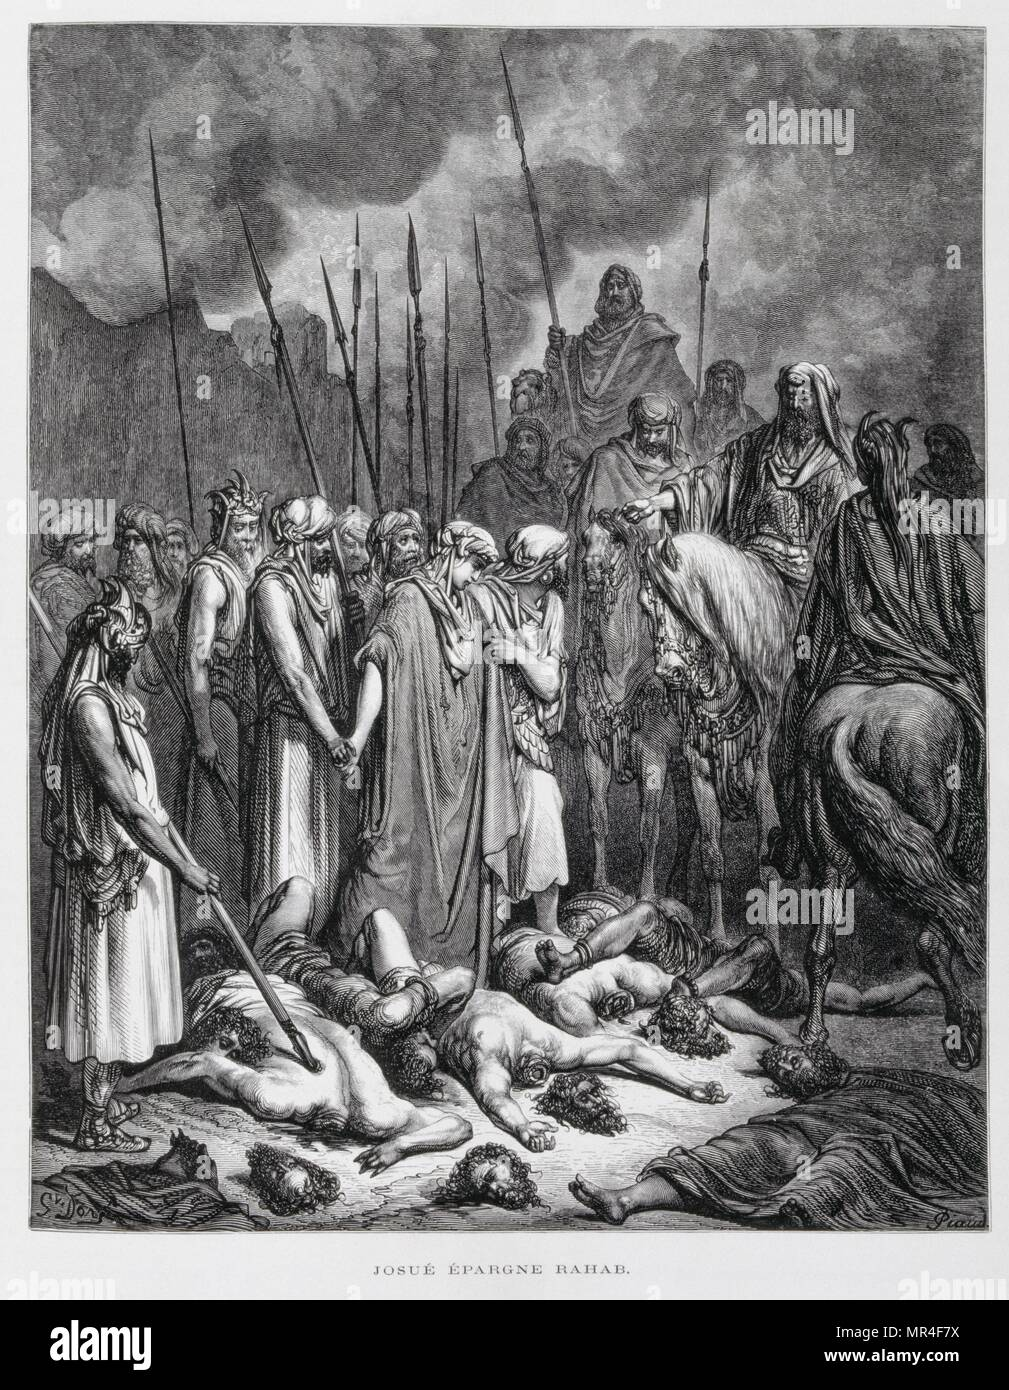 King Ahab is slain in battle by enemy archer. third book of Kings 22:34, Volume 1, Illustration from the Dore Bible 1866. In 1866, the French artist and illustrator Gustave Dore (1832–1883), published a series of 241 wood engravings for a new deluxe edition of the 1843 French translation of the Vulgate Bible, popularly known as the Bible de Tours. This new edition was known as La Grande Bible de Tours and its illustrations were immensely successful - Stock Image